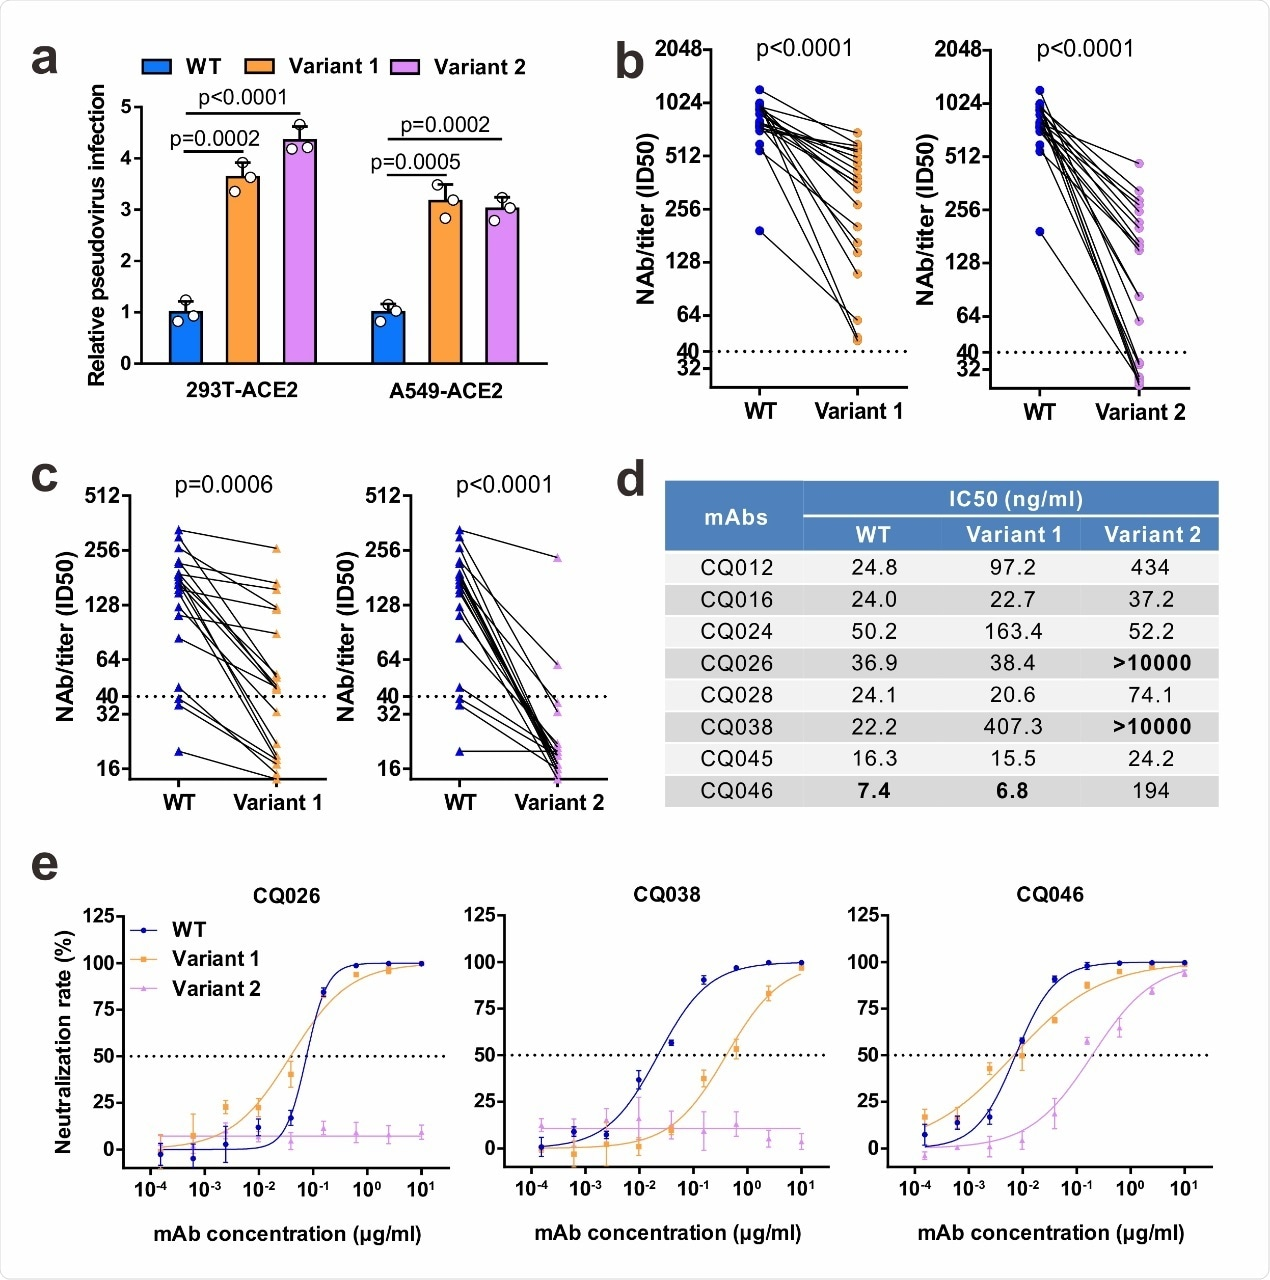 Neutralizing activities of convalescent sera and monoclonal antibodies against SARS-CoV-2 variants. a Infectivity of WT and variant pseudovirus conducted in 293T-ACE2 and A549-ACE2 cells. Cells were inoculated with equivalent doses of each pseudotyped virus. WT, wild-type Spike (GenBank: 213 QHD43416) pesudotyped virus; Variant 1, N501Y.V1 mutant Spike pesudotyped virus (containing H60/V70 deletion, Y144 deletion, N501Y, 215 A570D, D614G, P681H, T716I, S982A, D1118H); Variant 2, N501Y.V2 mutant Spike pesudotyped virus (containing K417N, E484K, N501Y, D614G). b-c Neutralization of WT and variant pesueoviruses by convalescent sera. Pseudovirus-based neutralizing assay were performed to detect neutralizing antibody (NAb) titers against SARS-CoV-2. The thresholds of detection were 1:40 of ID50. Twenty sera (indicated by circles) were drawn 5 to 33 days post-symptom onset (b); 20 sera (indicated by triangles) were drawn ~ 8 months post-symptom onset (c). d-e The half-maximal inhibitory concentrations (IC50) for tested monoclonal antibodies (mAbs) against pseudoviruses (d) and representative neutralization curves (e). Statistical significance was determined by One-way ANOVA.